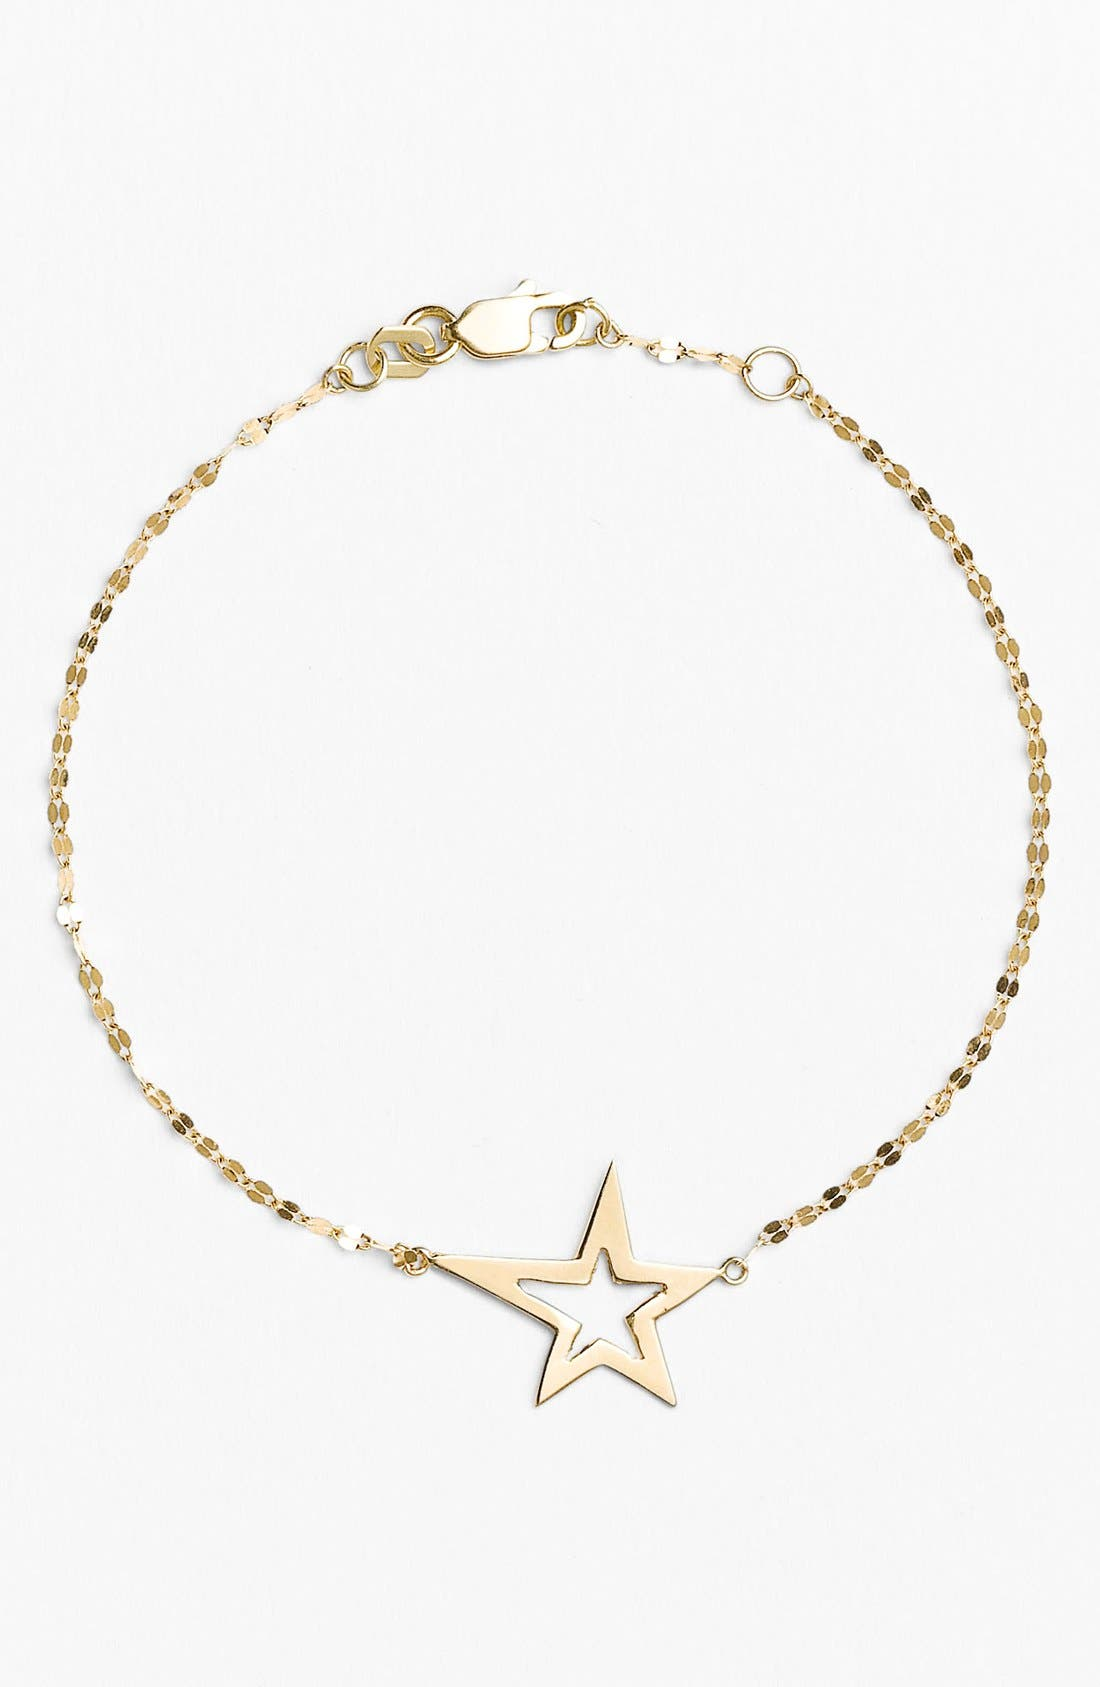 Alternate Image 1 Selected - Lana Jewelry Star Station Bracelet